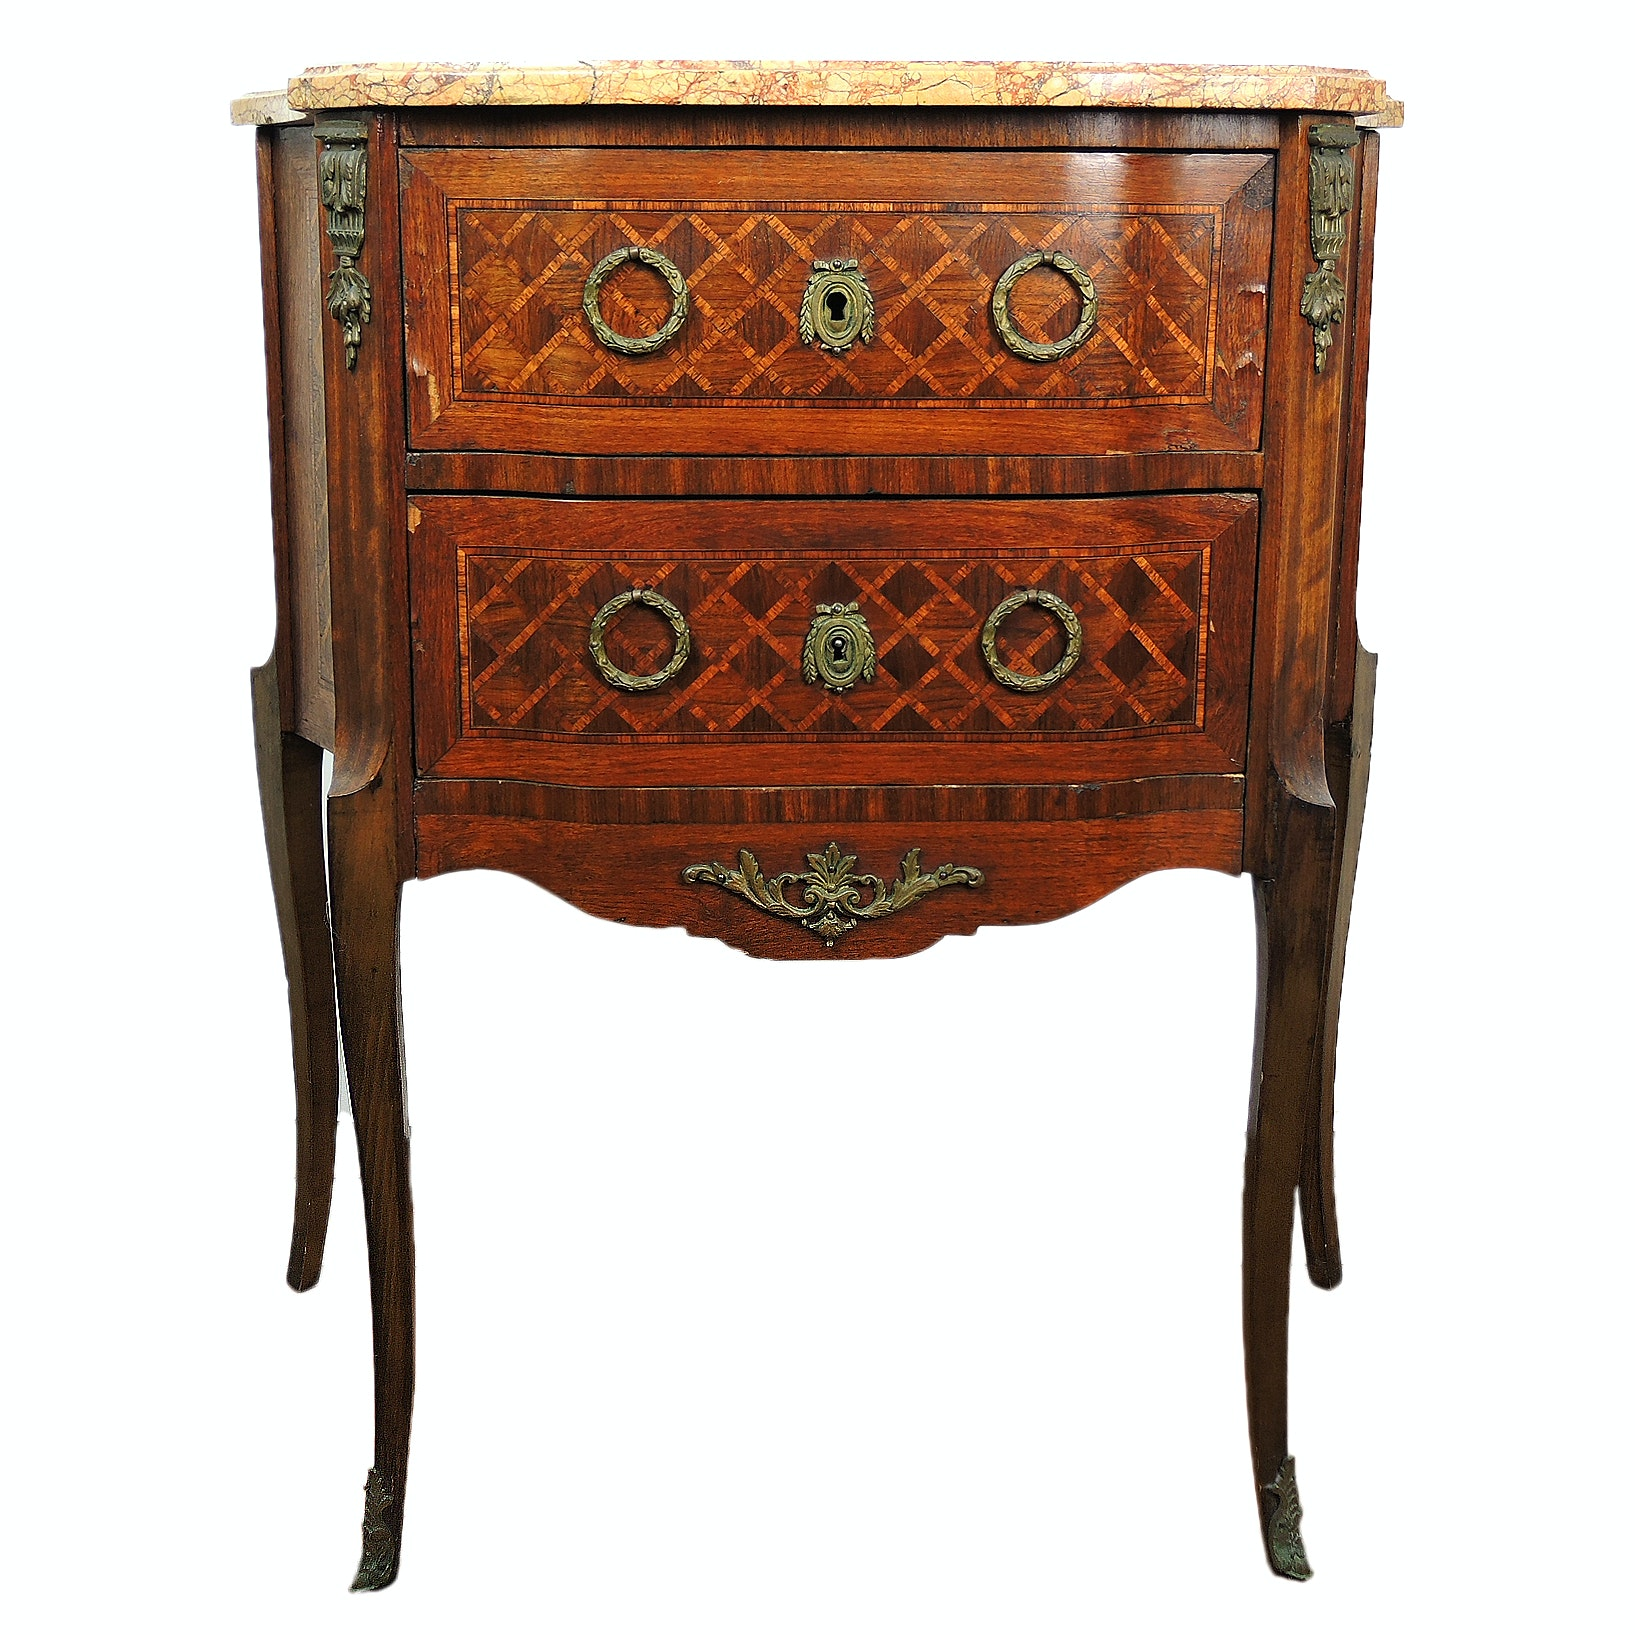 Antique French Louis XVI-Style Marble-top Marquetry Commode